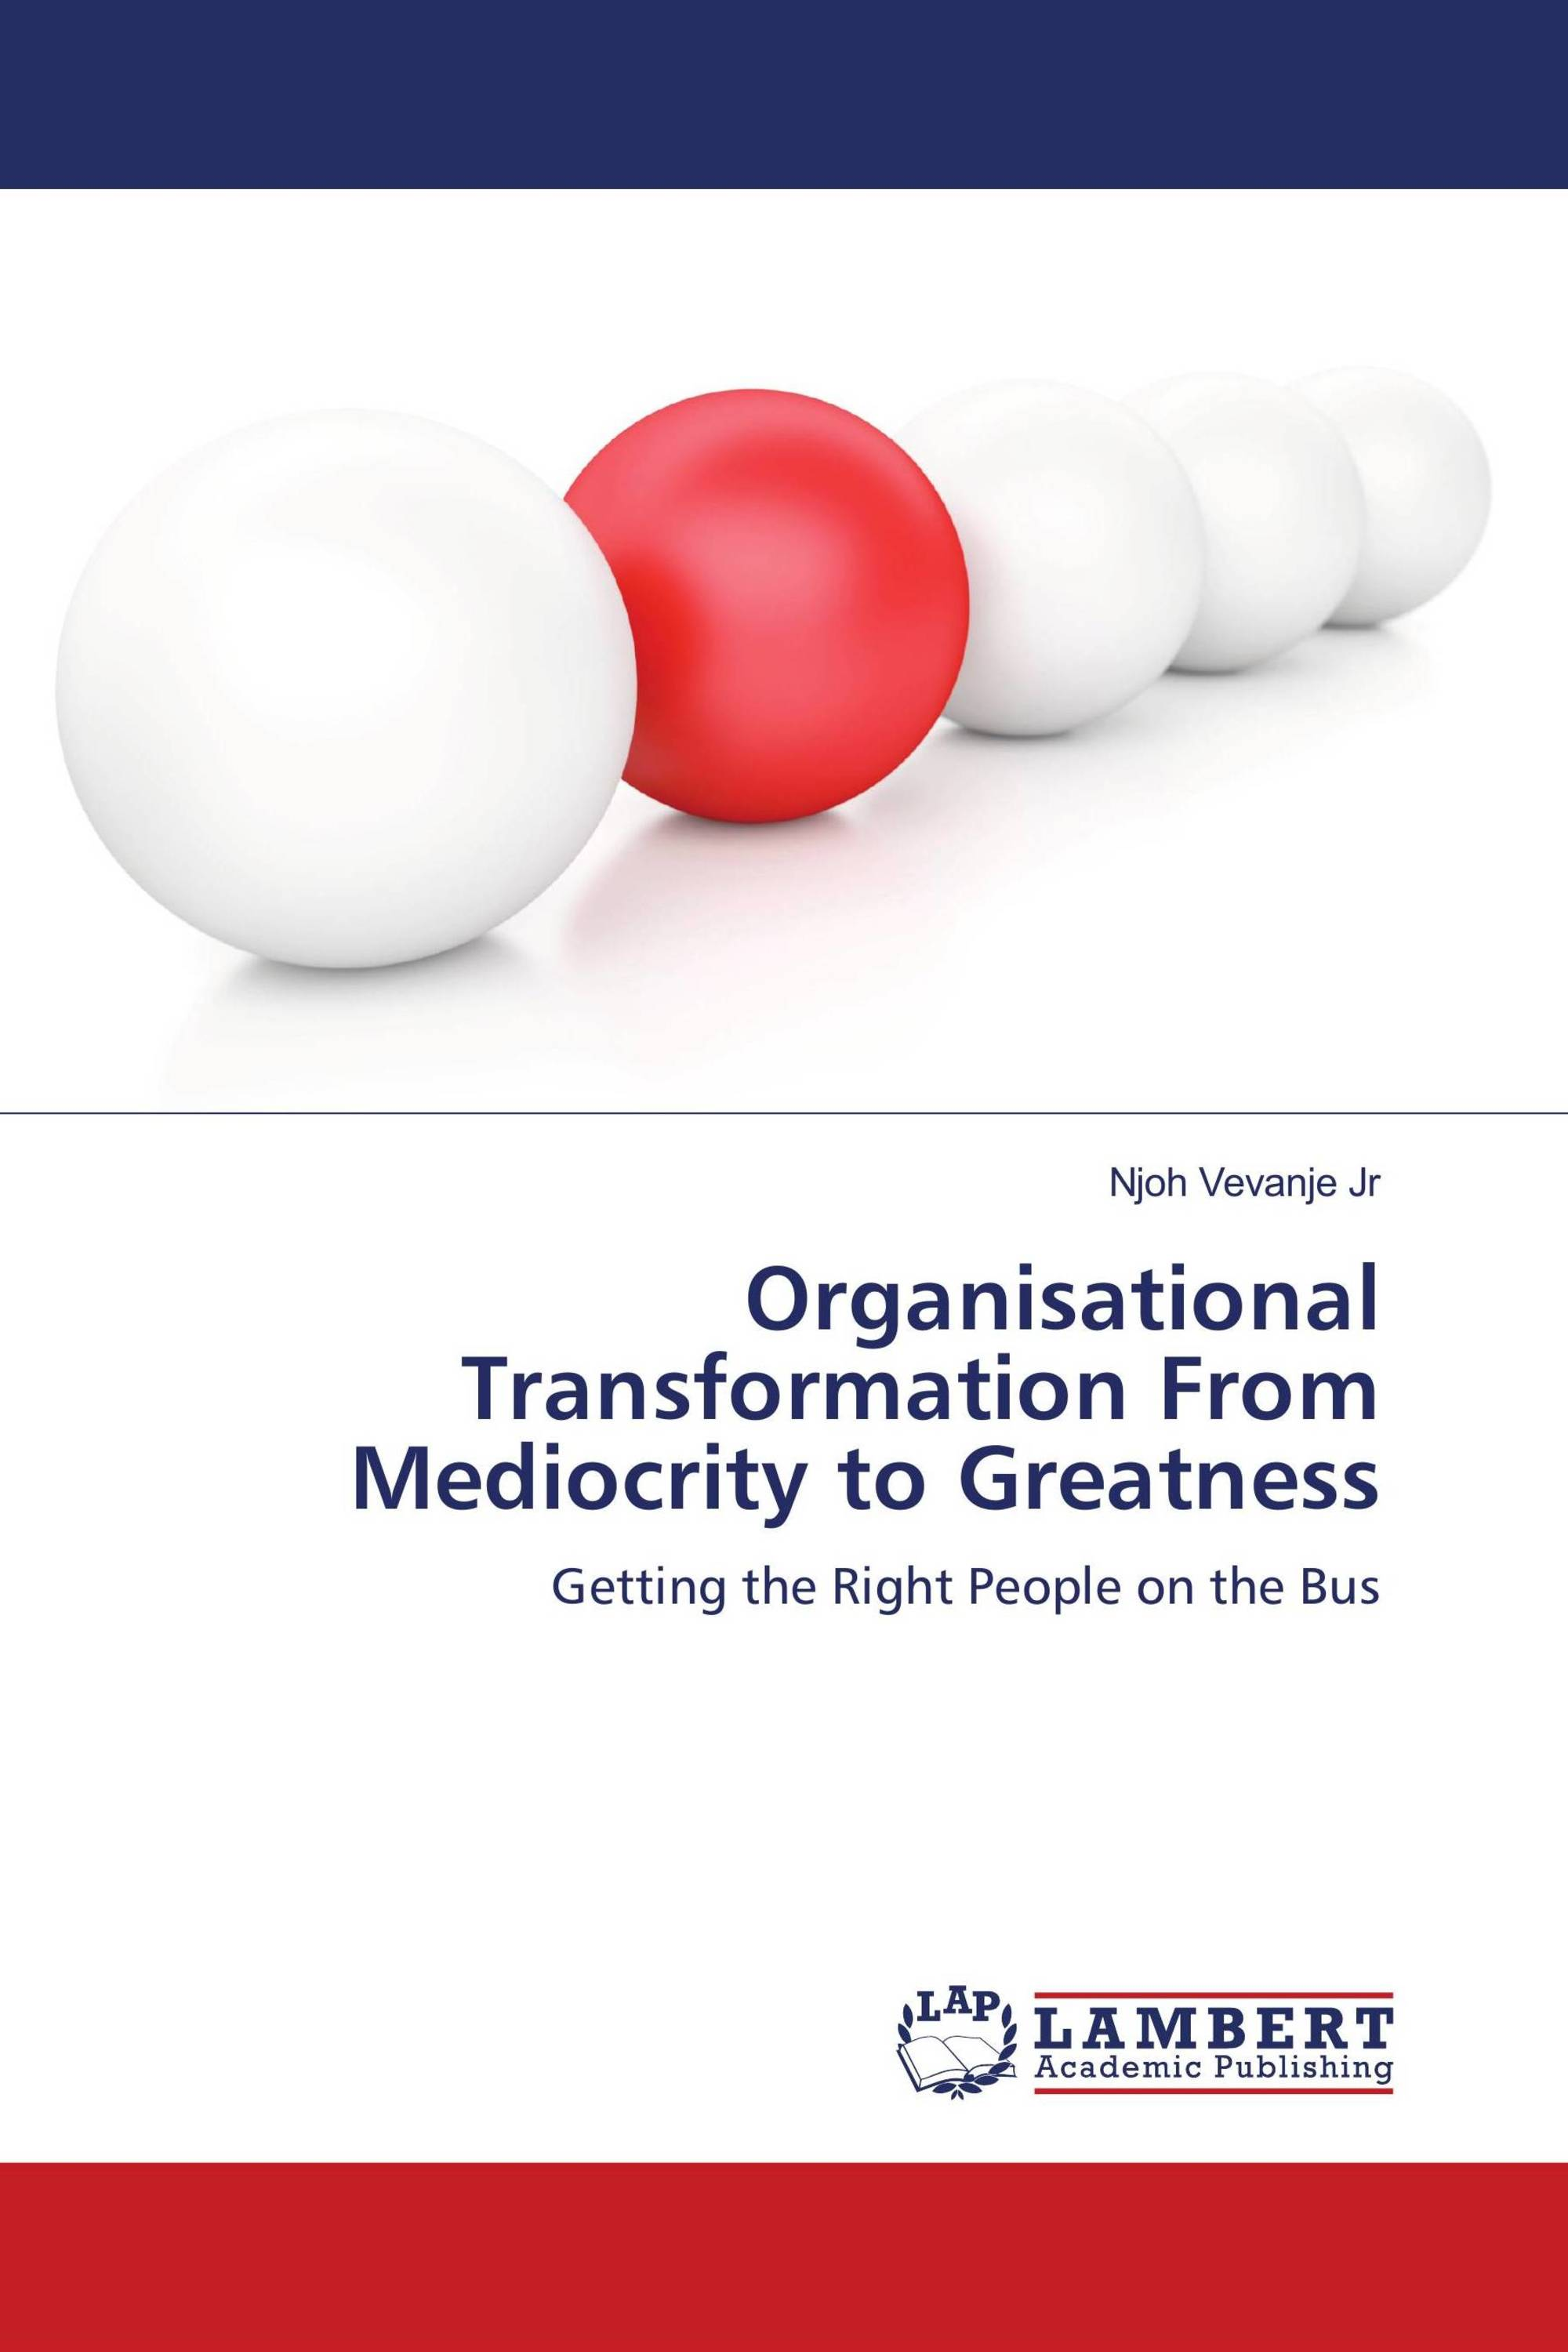 Organisational Transformation From Mediocrity to Greatness